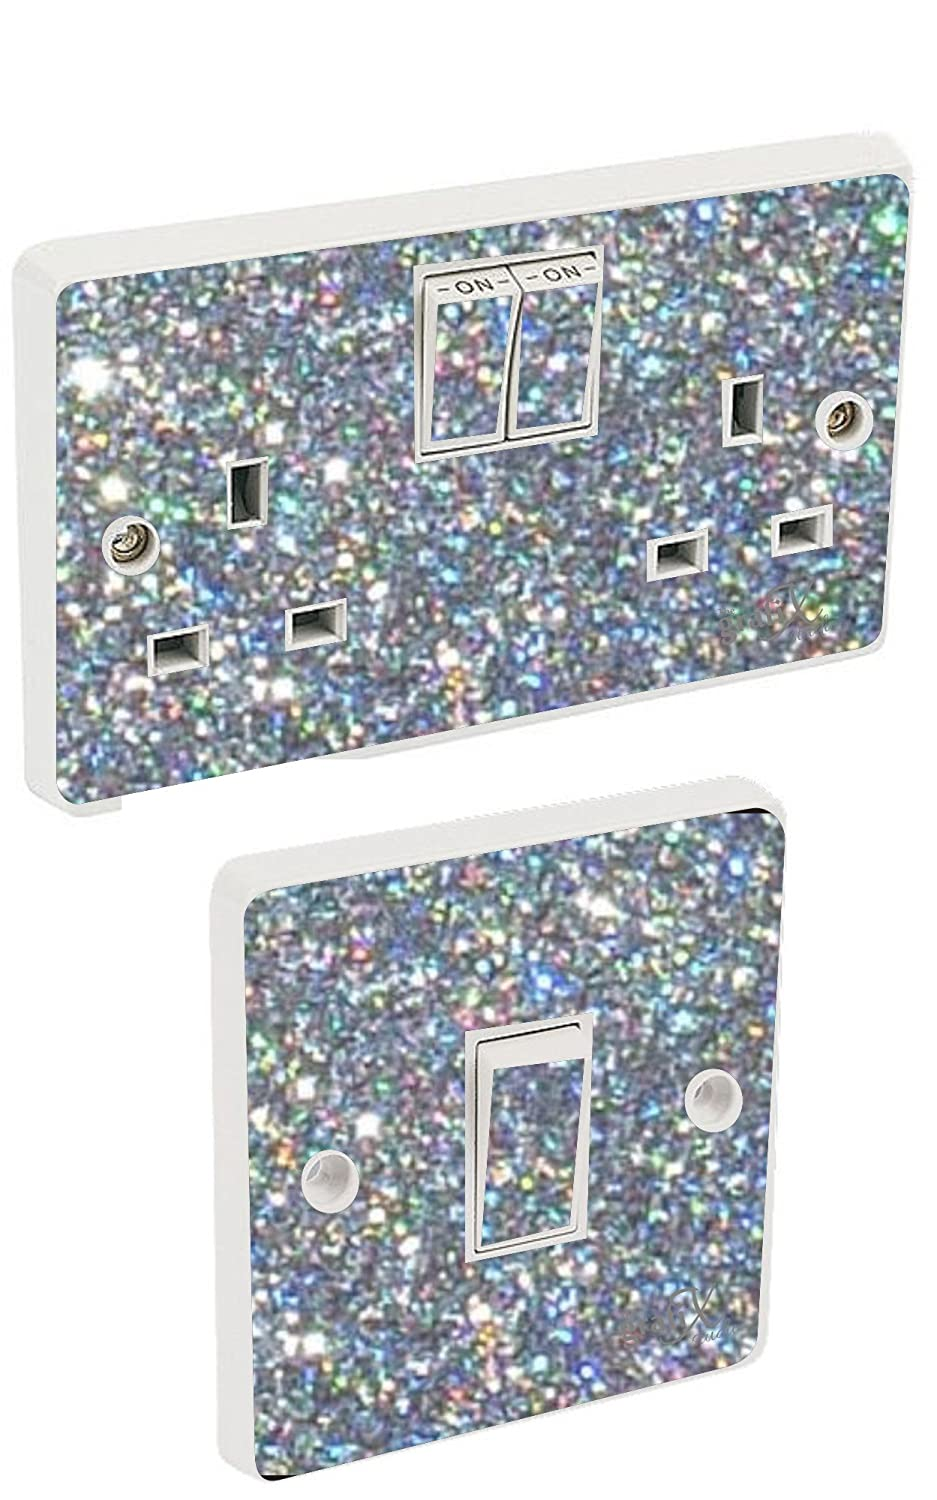 Sparkly Bedroom Wallpaper Muriva 701352 Sparkle Wallpaper Roll Silver Amazoncouk Diy